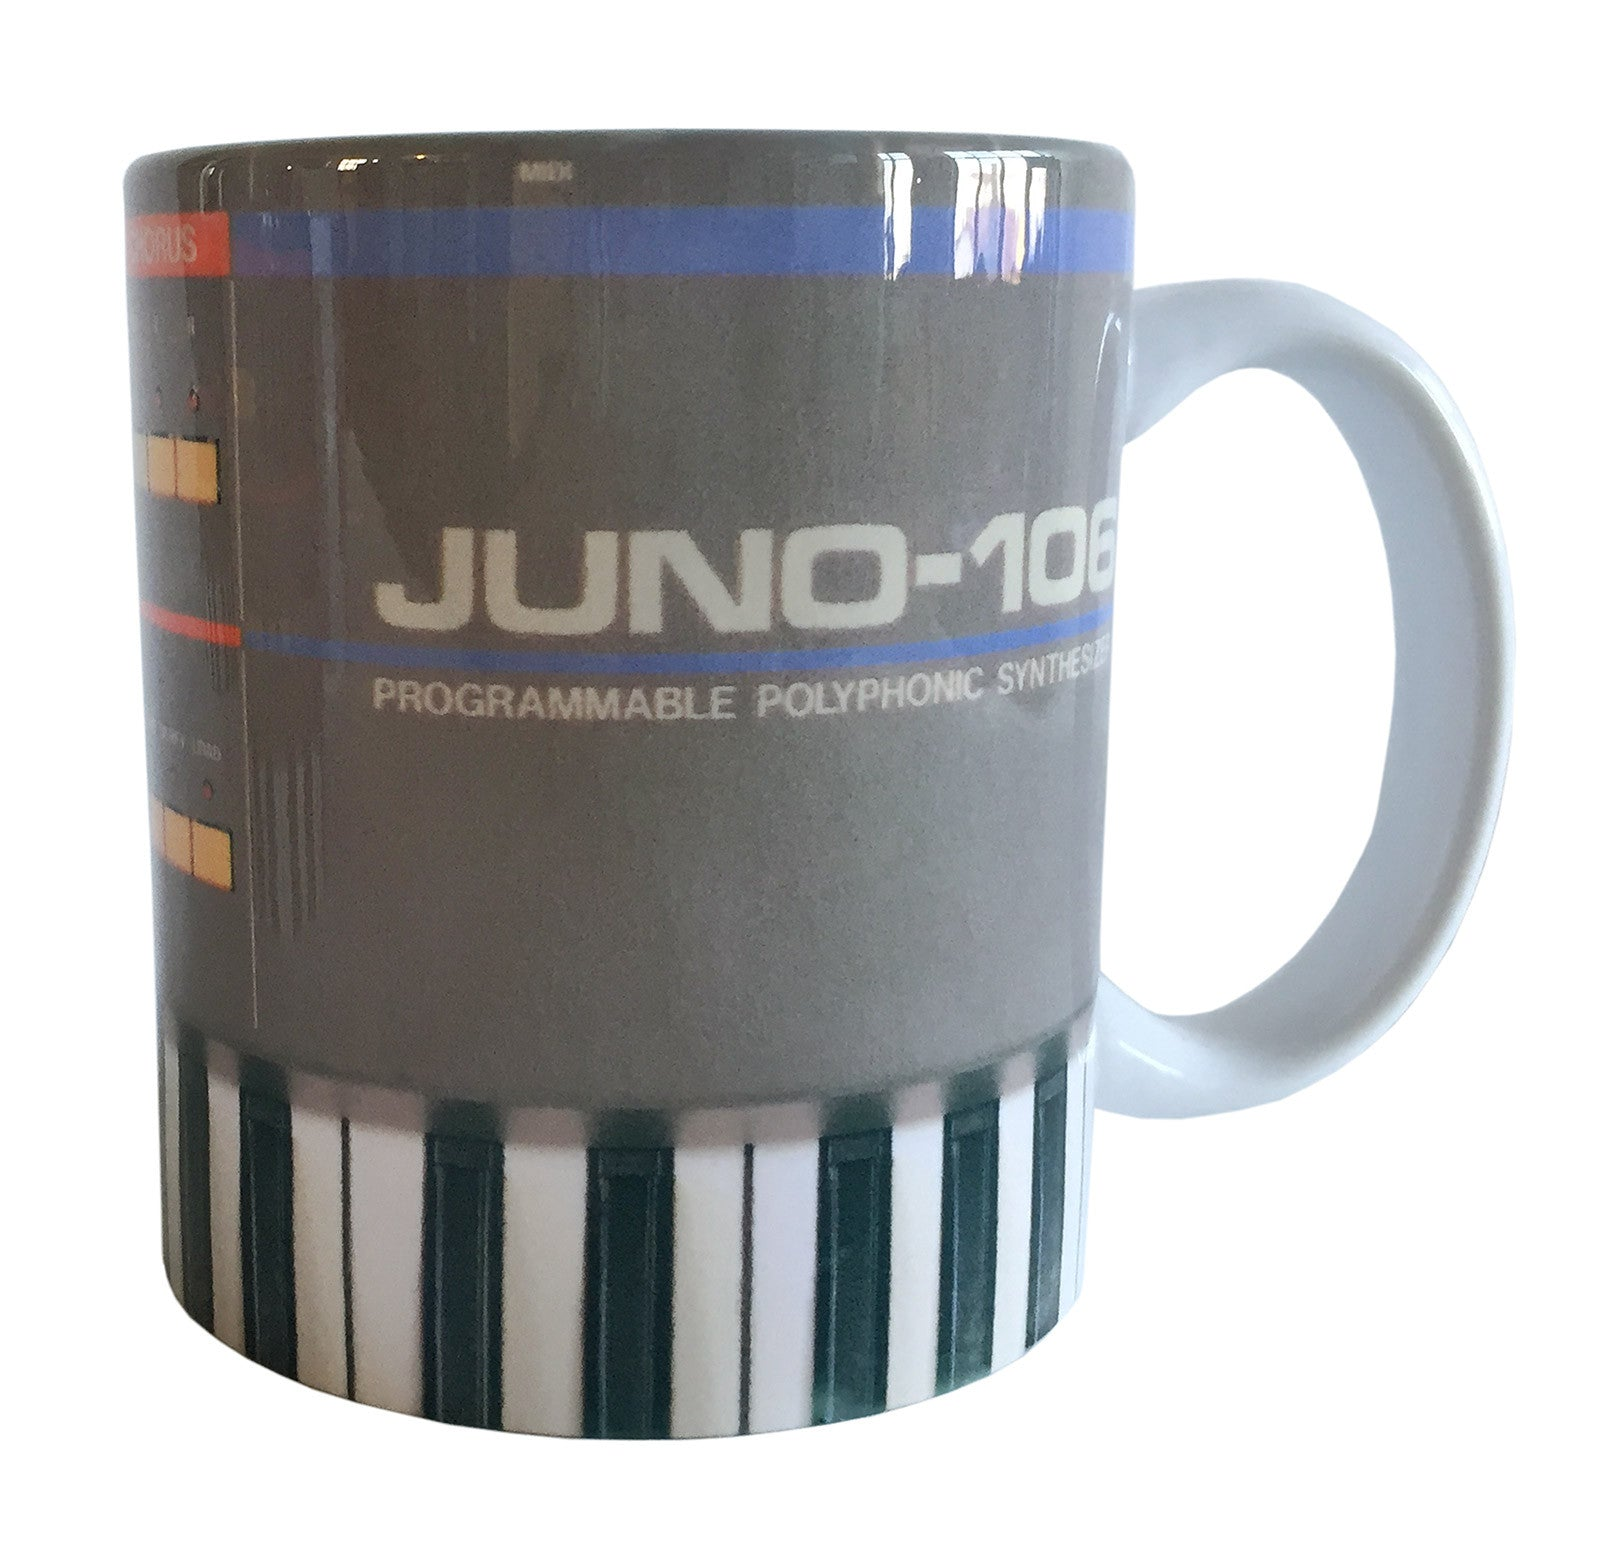 Juno-106 Mug, Vintage Synthesizer Coffee Cup - Well Done Goods, by  Cyberoptix